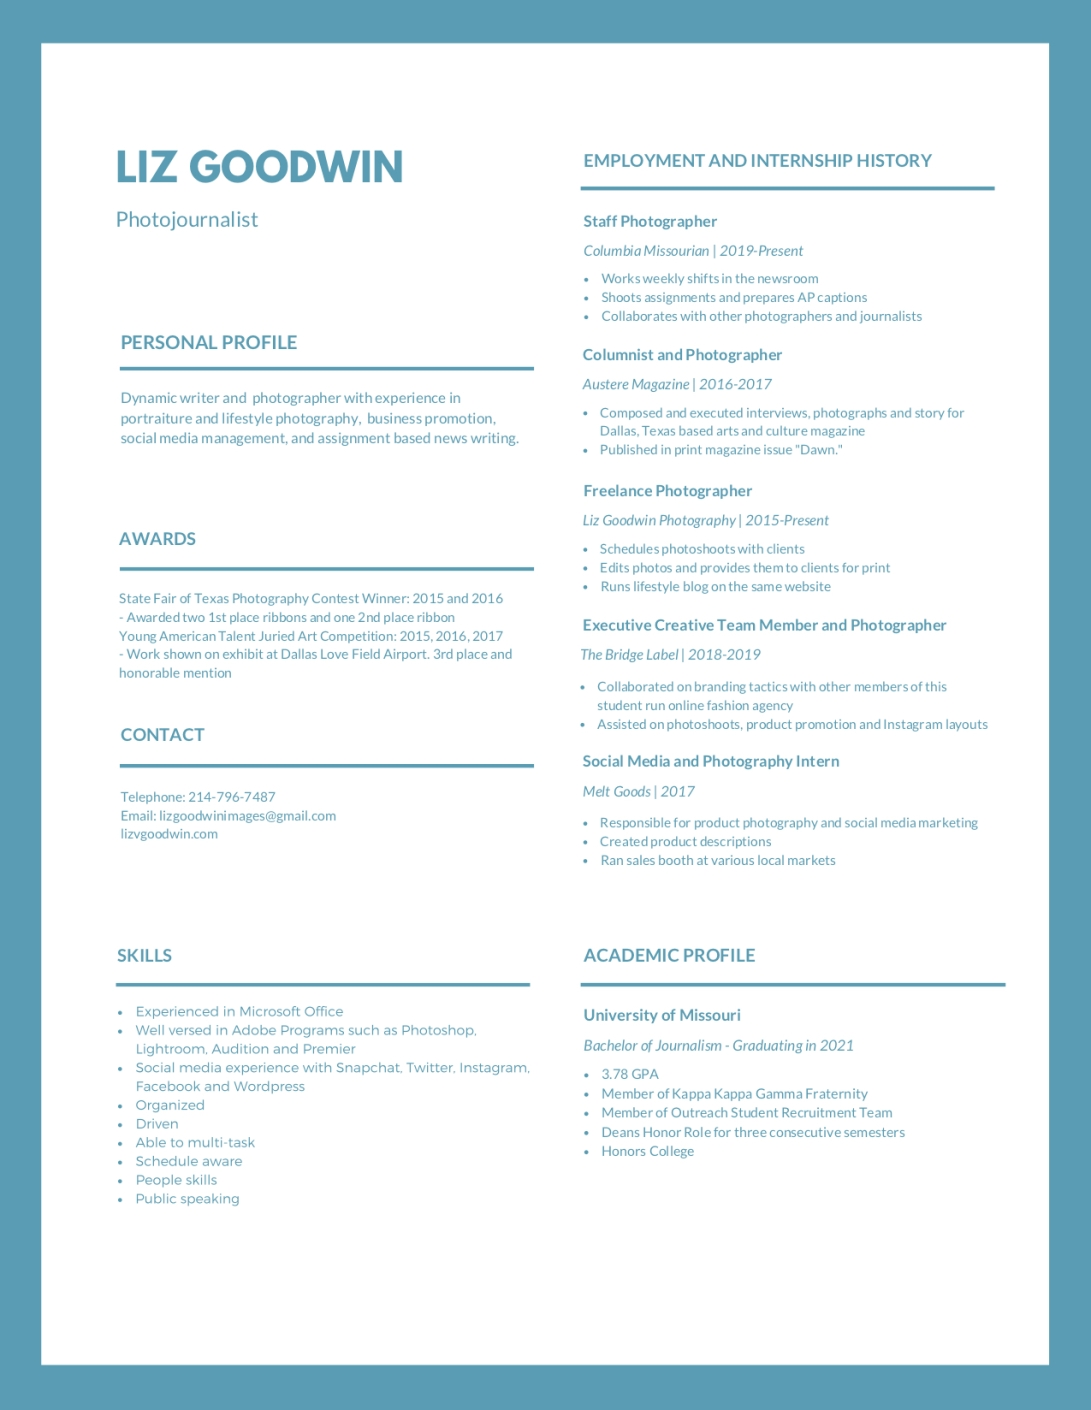 Liz Goodwin Resume - Feb 2019